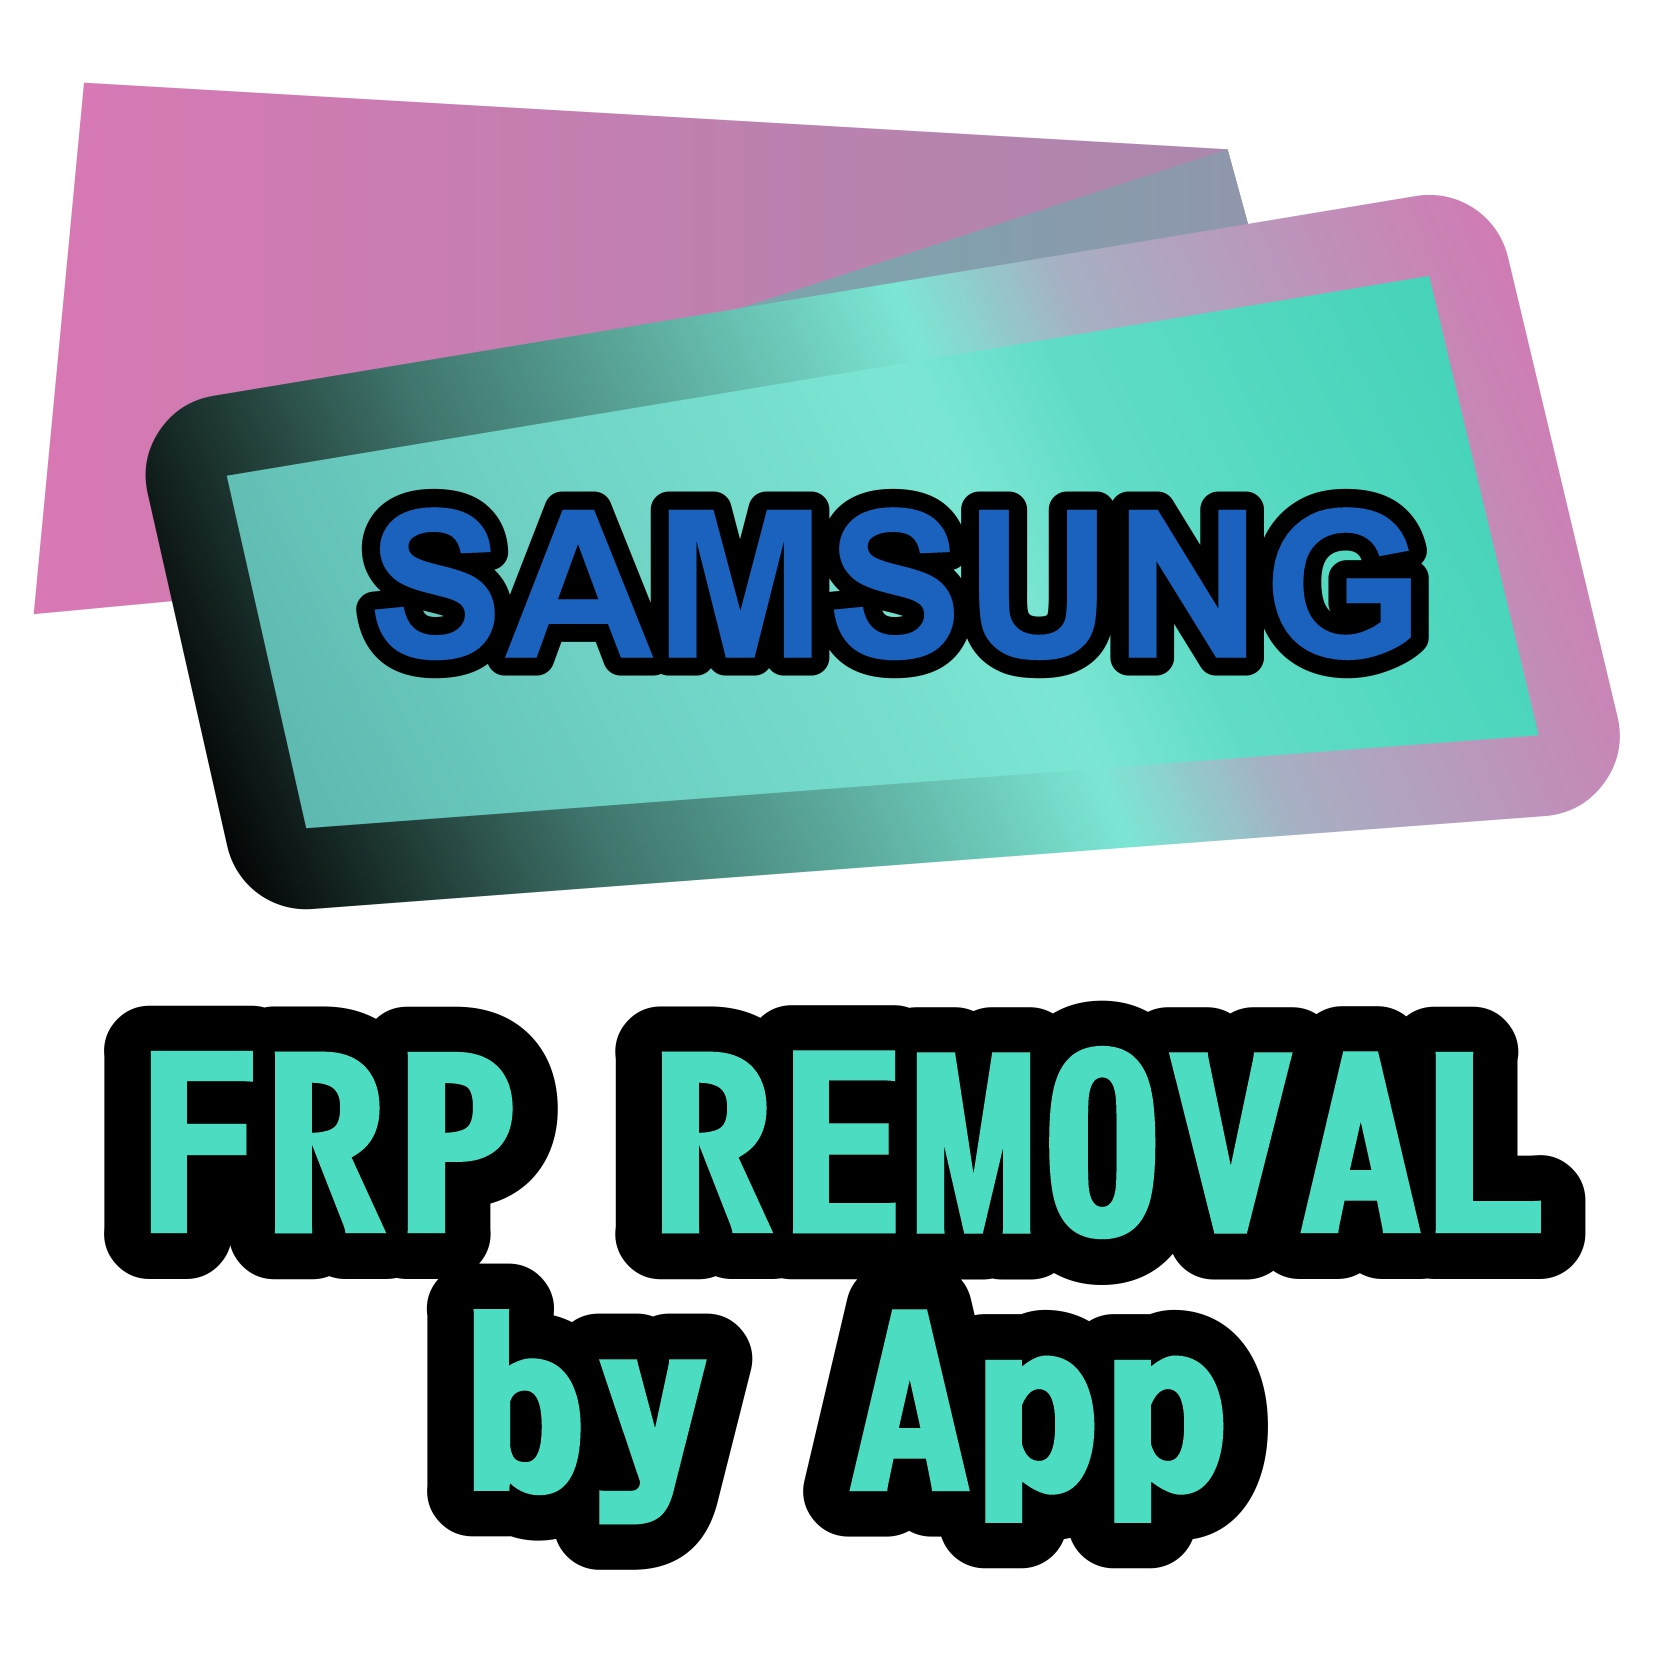 Samsung FRP Removal by app